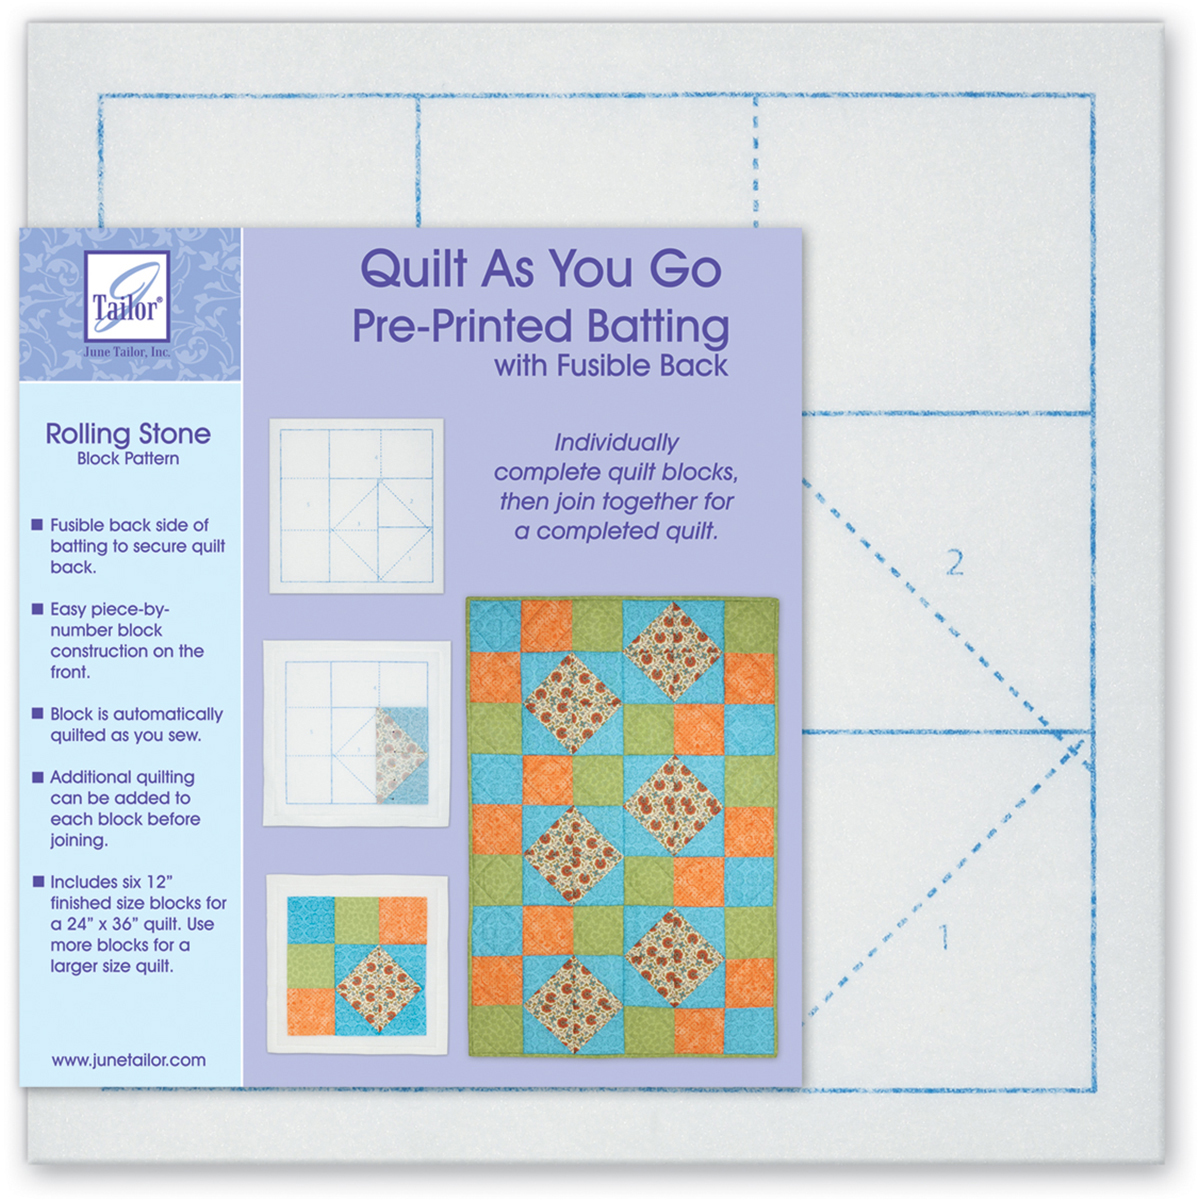 June Tailor Quilt as You Go Rolling Stone Notion Multi-Colored